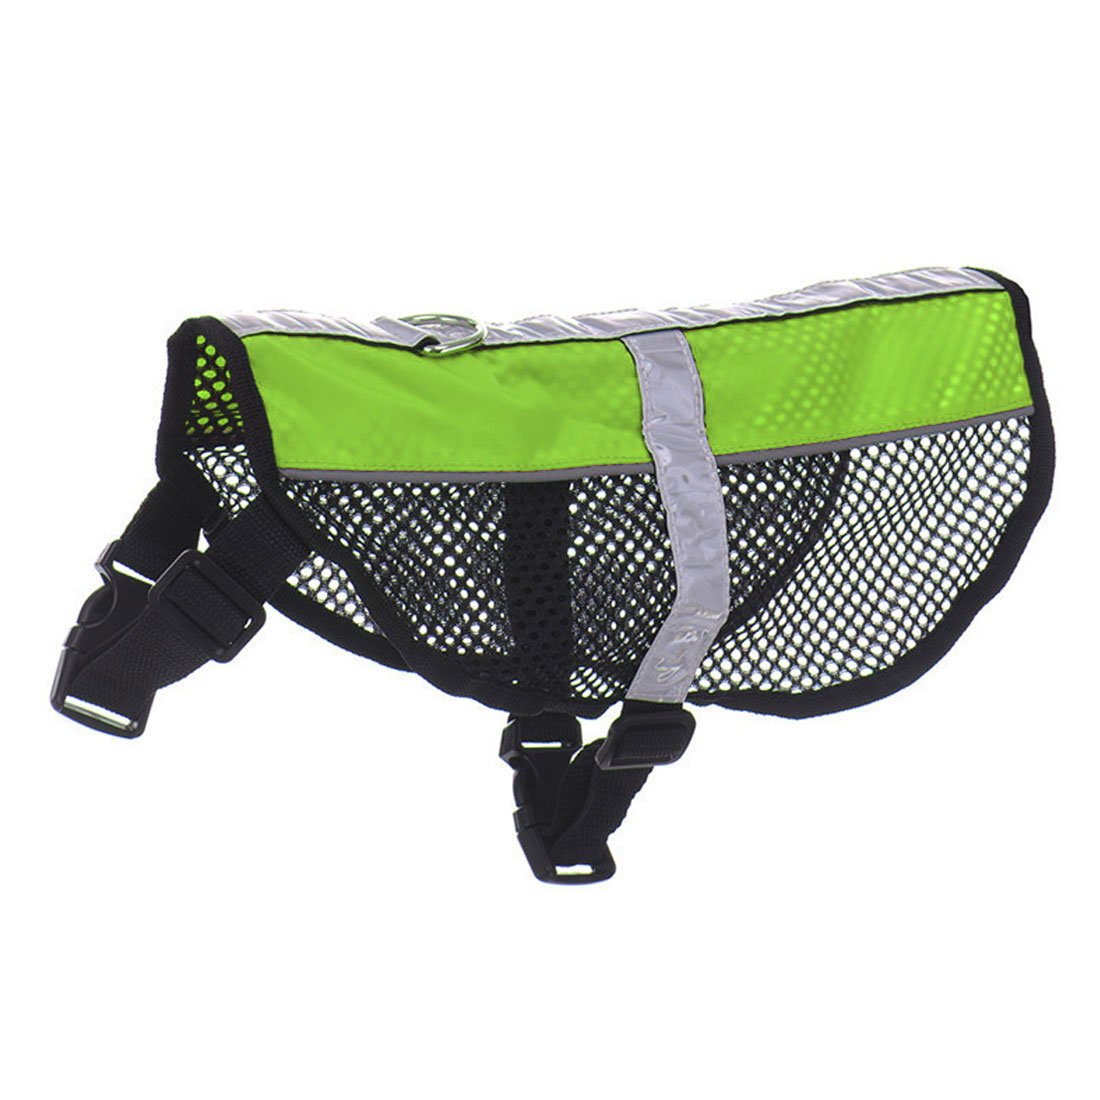 Service Dog Mesh Vest Harness Cool Comfort Nylon High Visibility Safety Jacket Green L